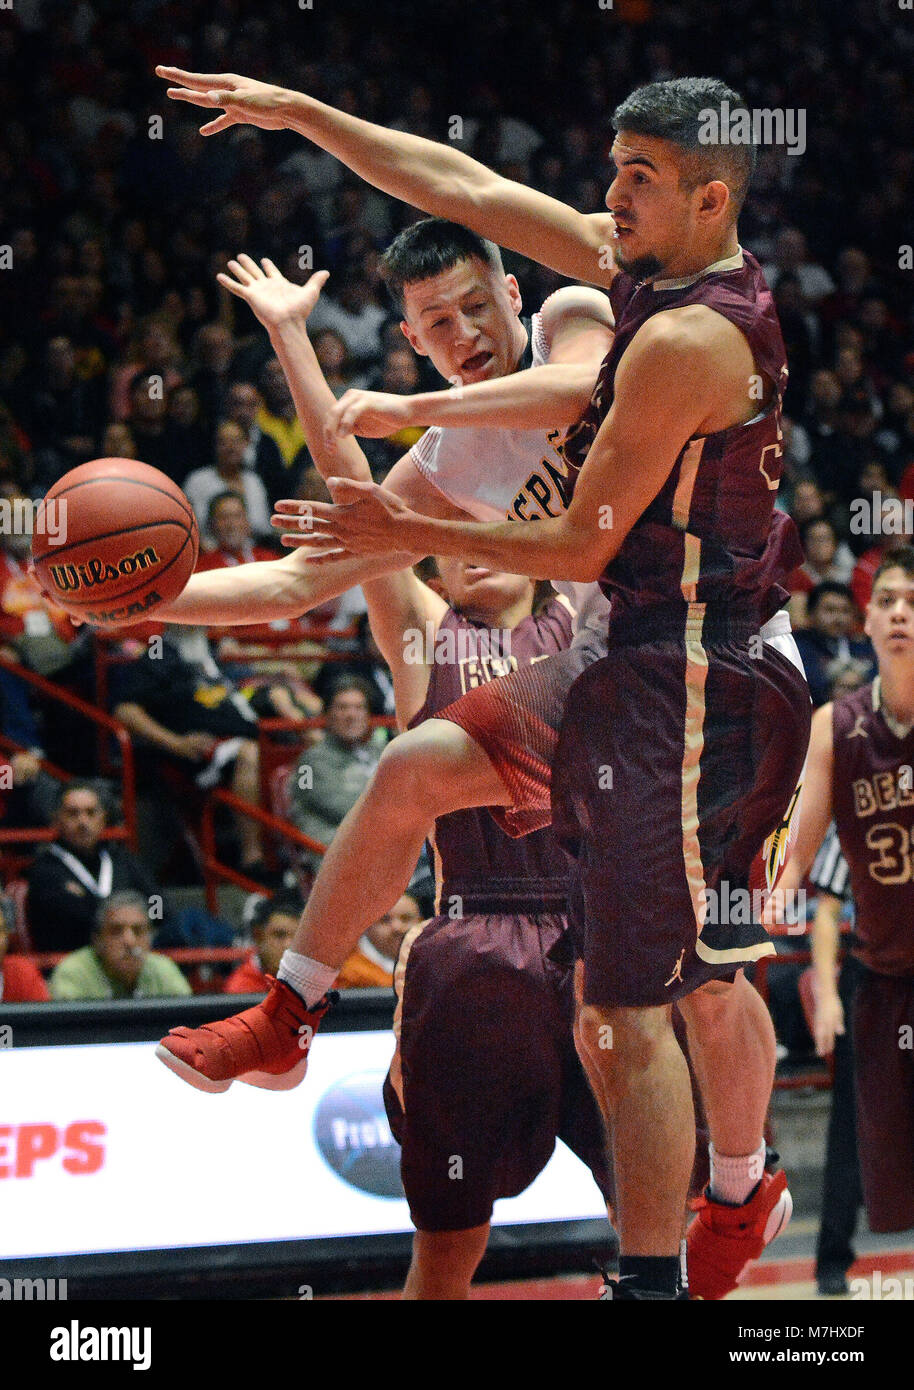 Albuquerque, NM, USA. 10th Mar, 2018. Belen's #34 Ryan Garcia guards Espanola's #3 Christian Fernandez and forces him to pass off the ball. Saturday, March. 10, 2018. Credit: Jim Thompson/Albuquerque Journal/ZUMA Wire/Alamy Live News Stock Photo